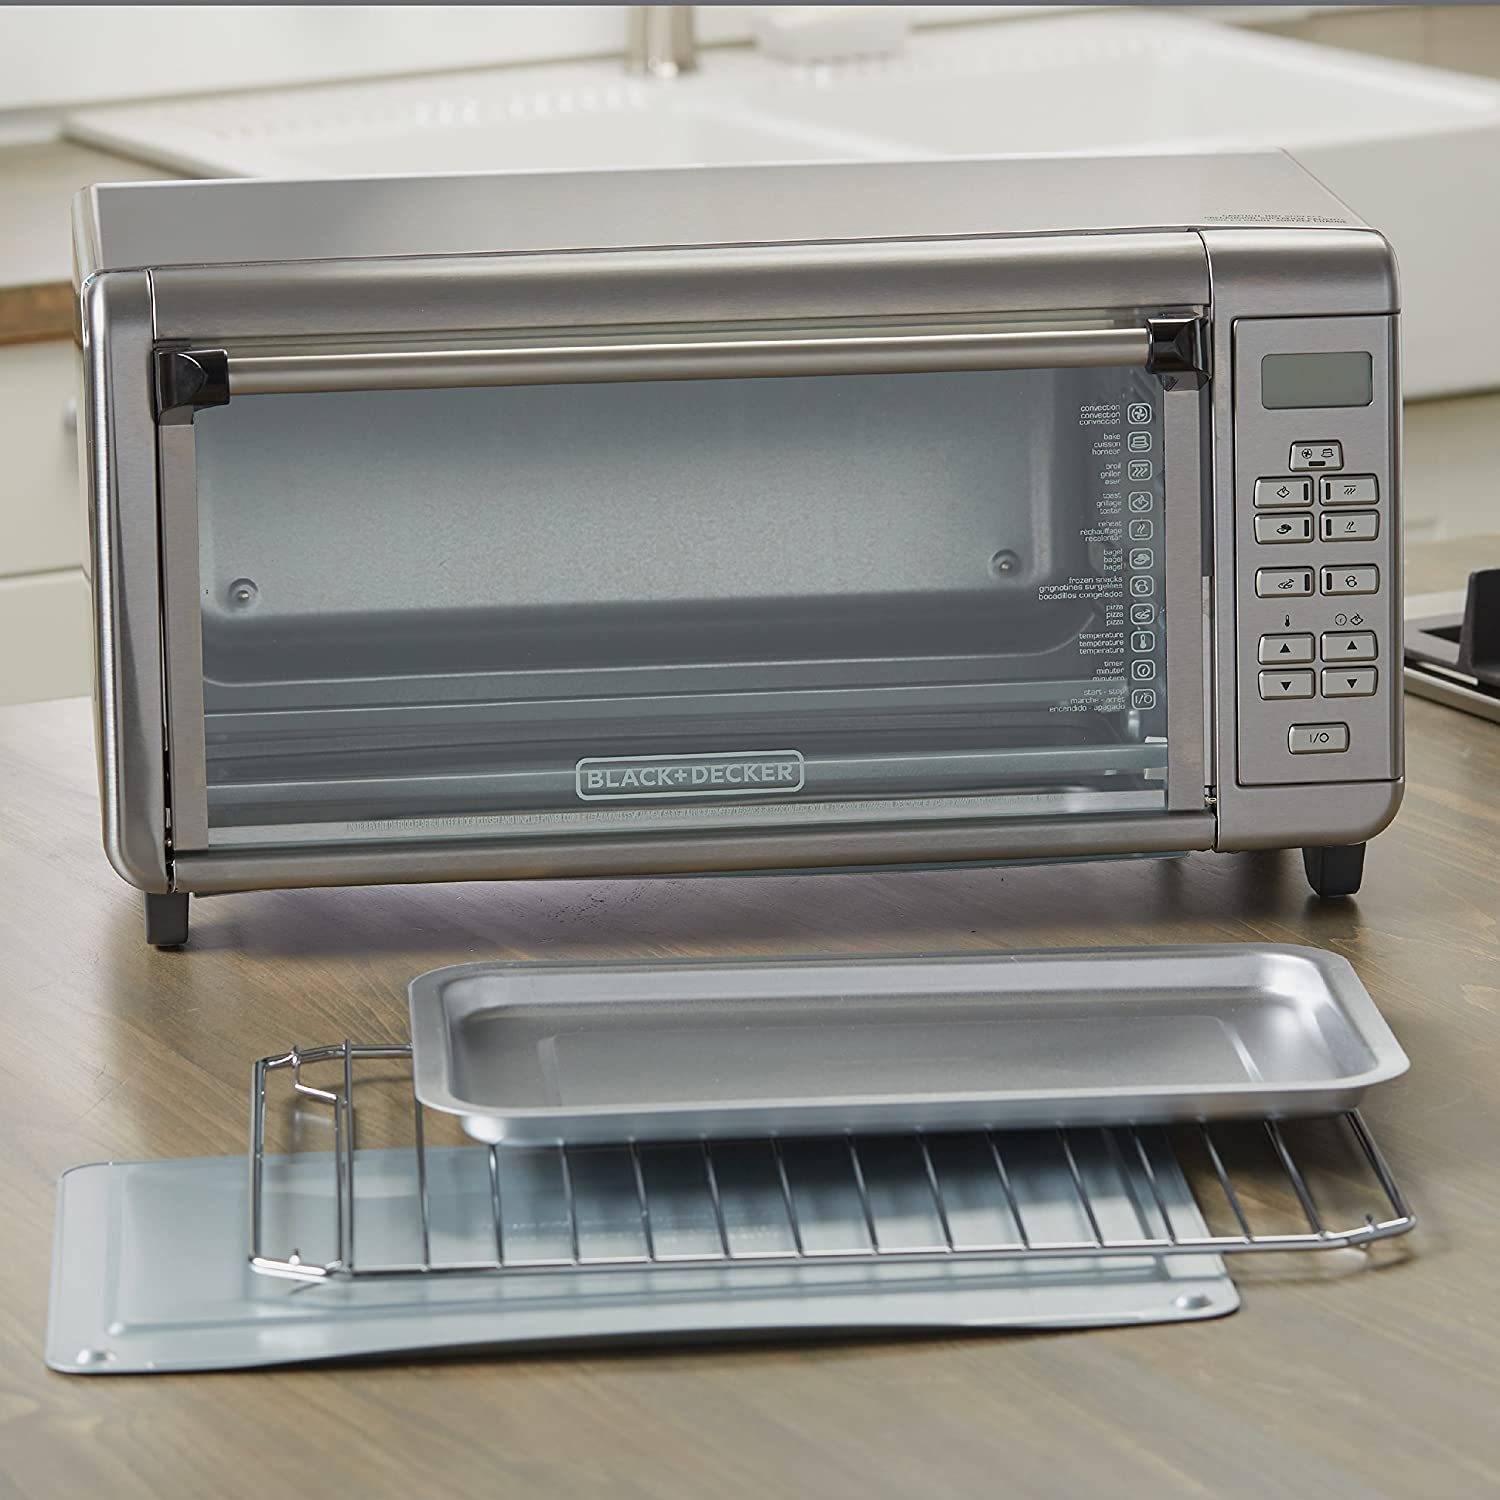 8-Slice BLACK+DECKER TO3290XSD TO3290XSBD Toaster Oven Stainless Steel